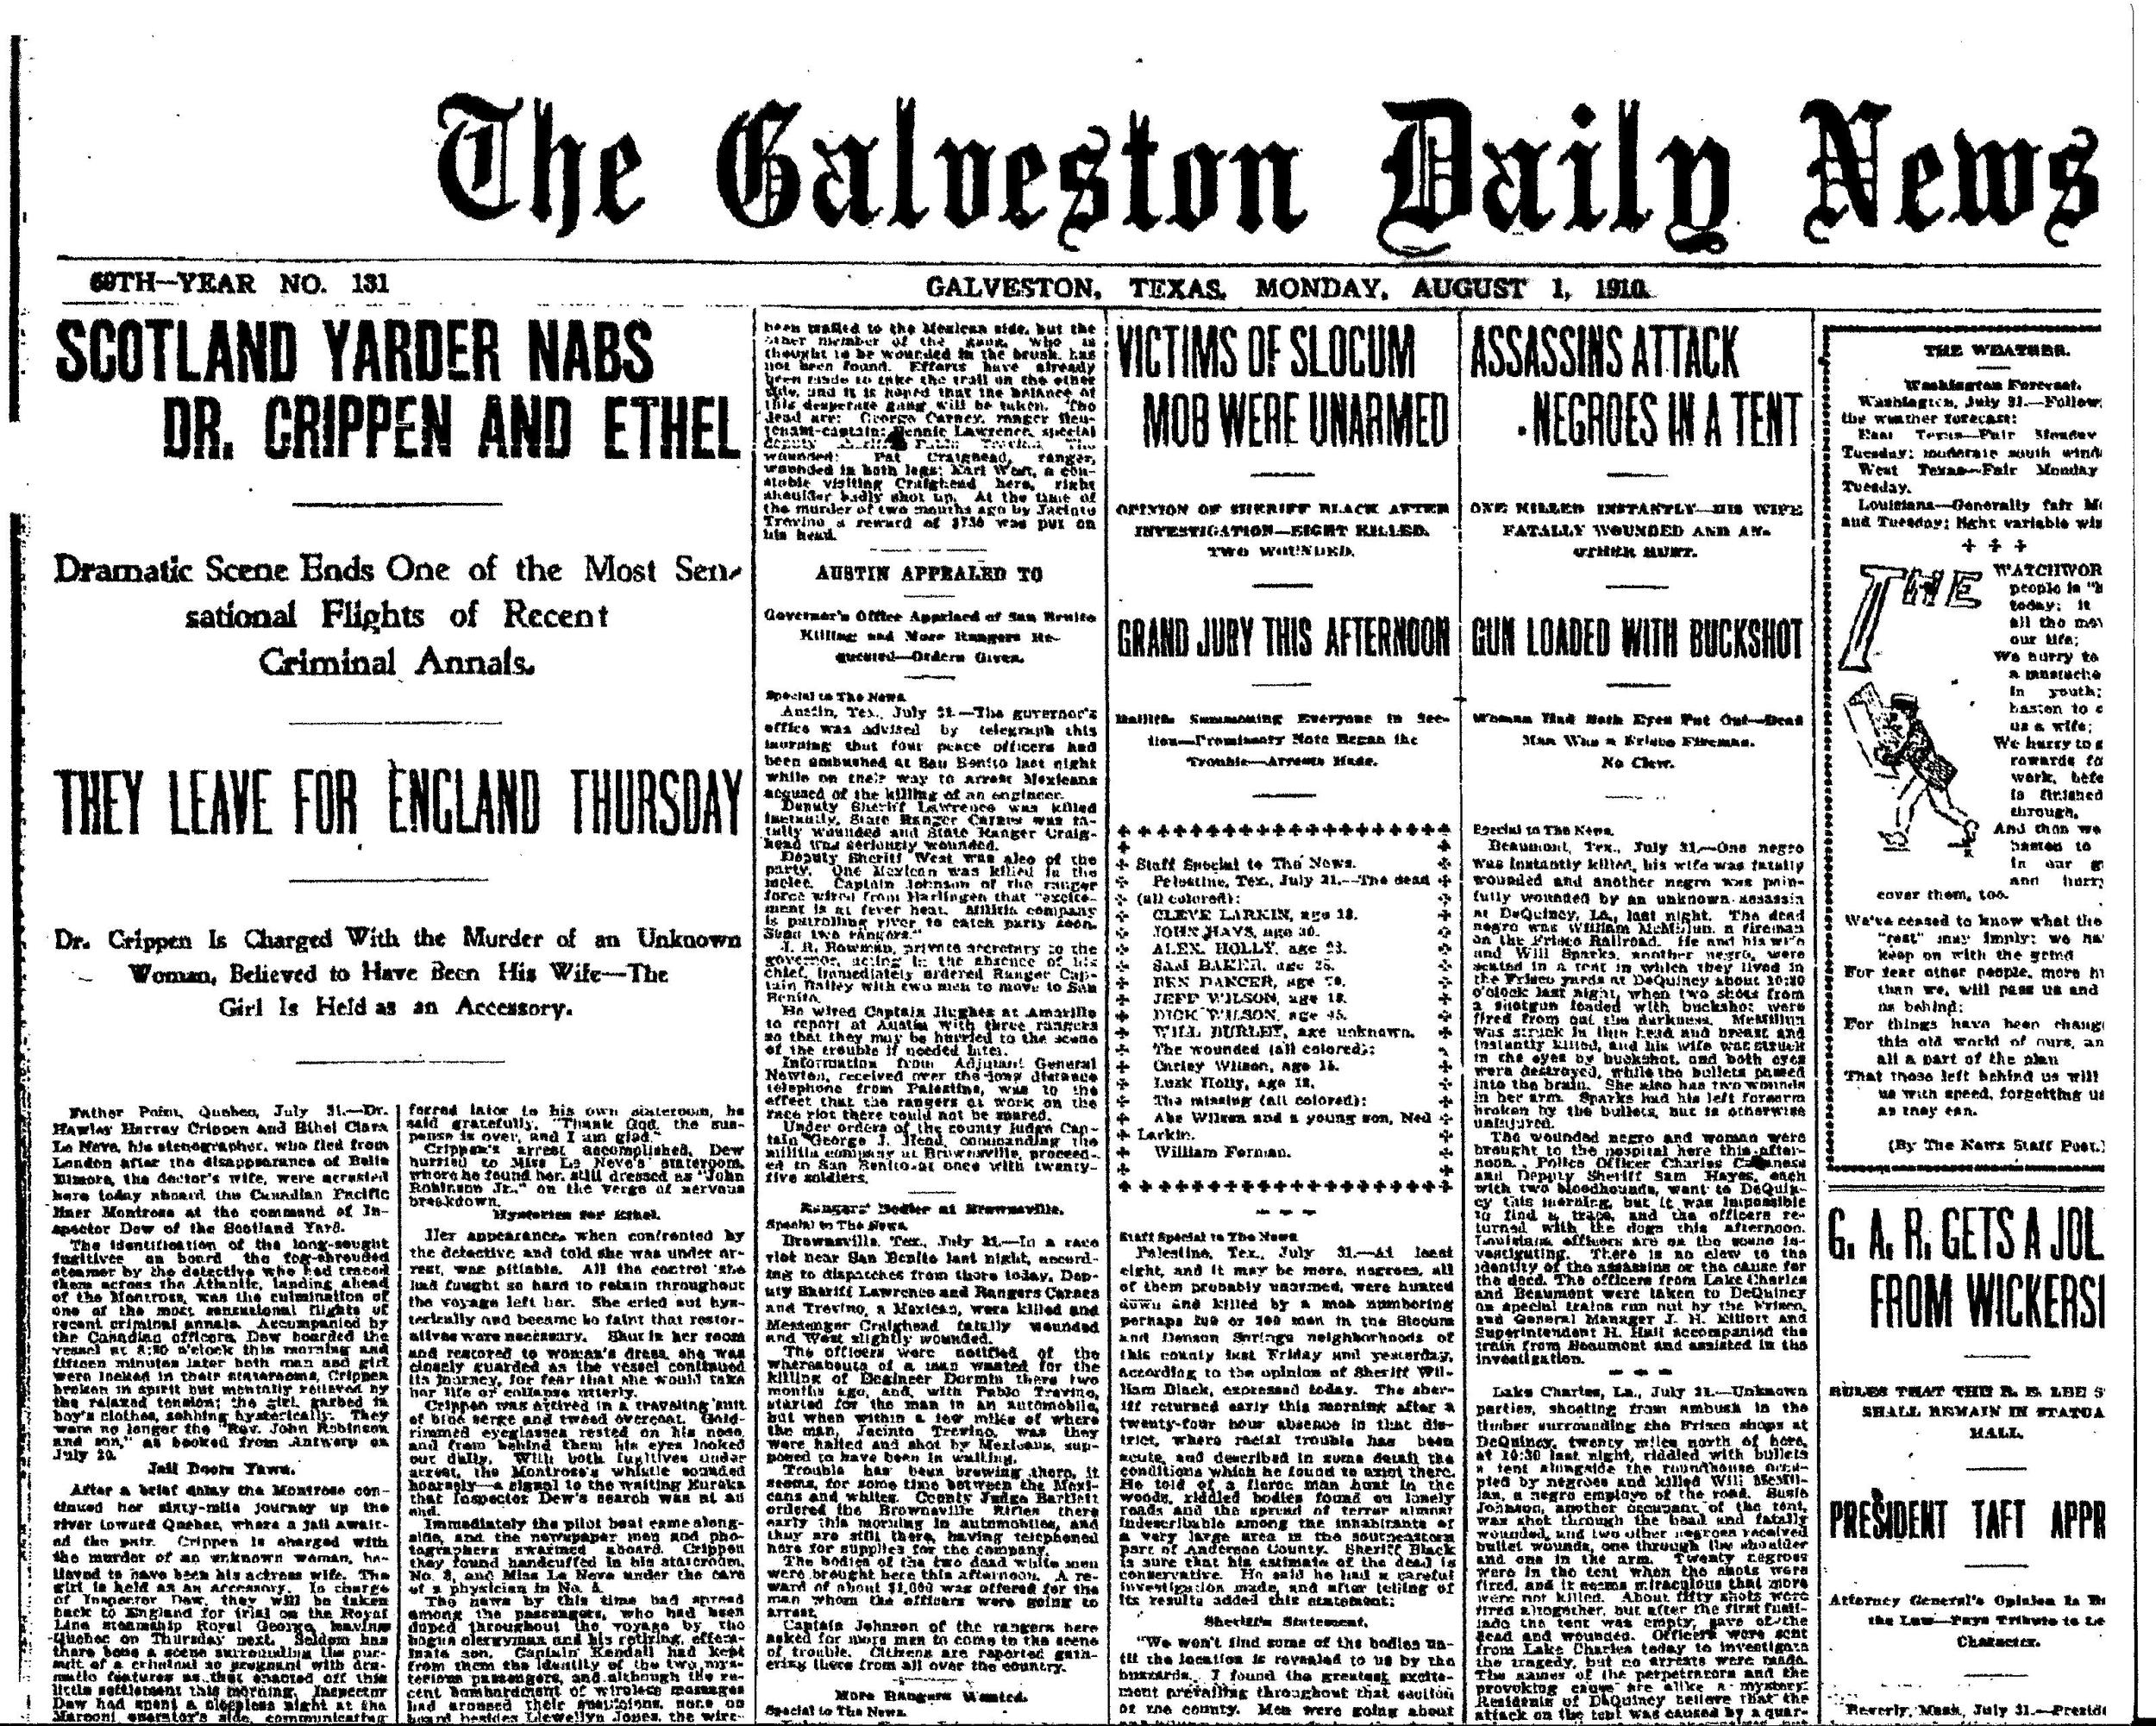 """Victims of Slocum Mob Were Unarmed"" August 1, 1910 (Galveston Daily News)"